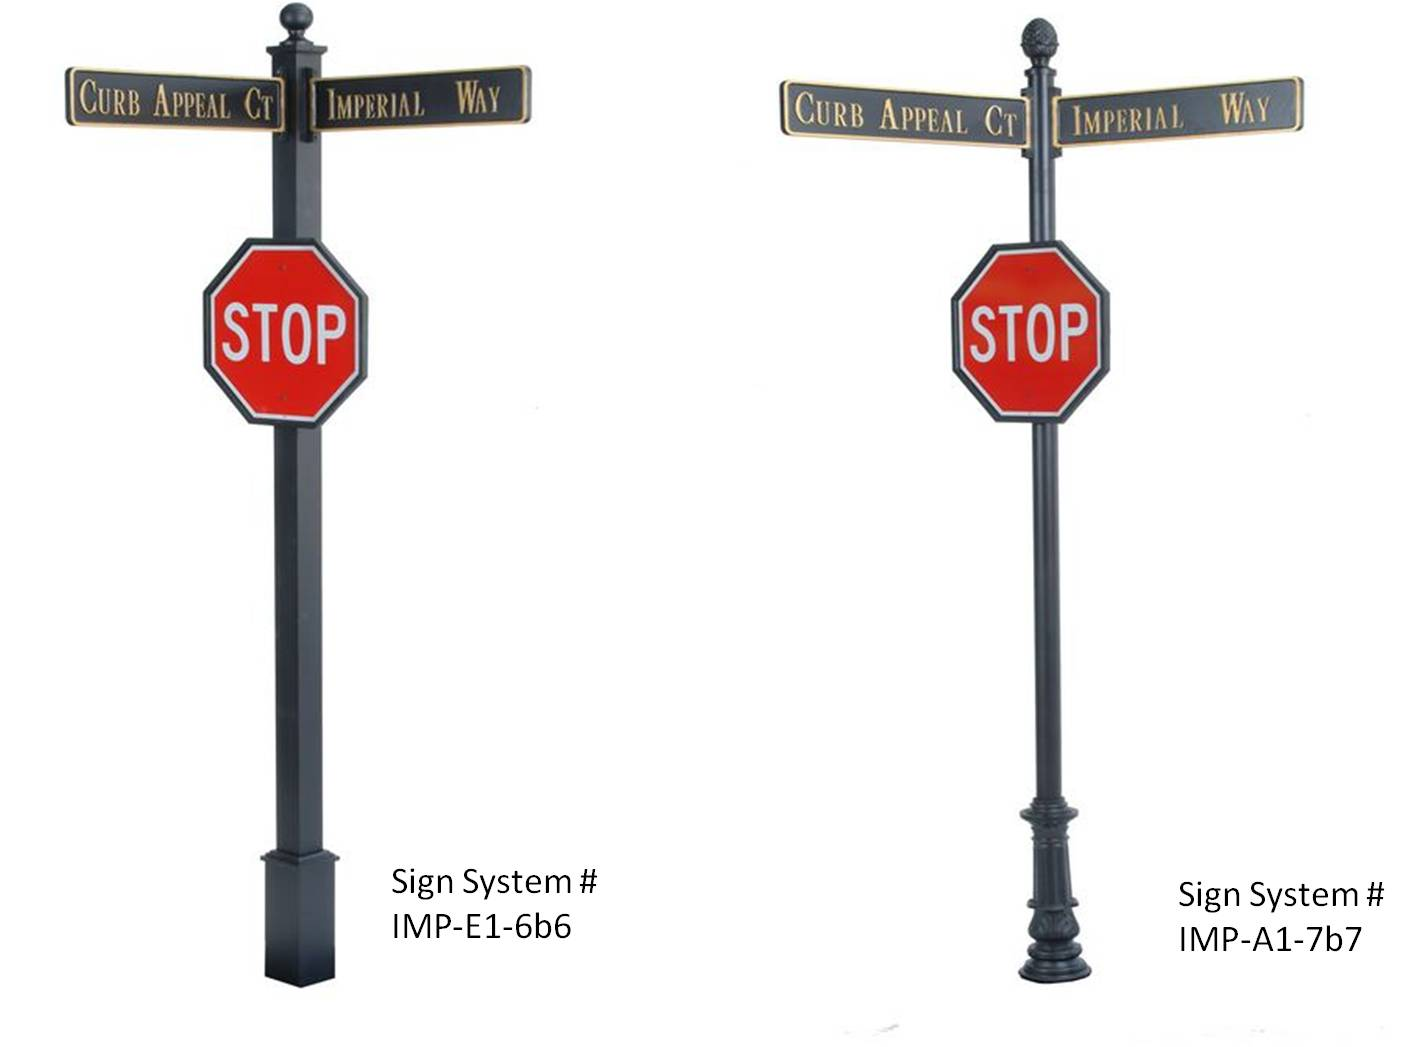 Imperial Street Name Traffic Sign Systems